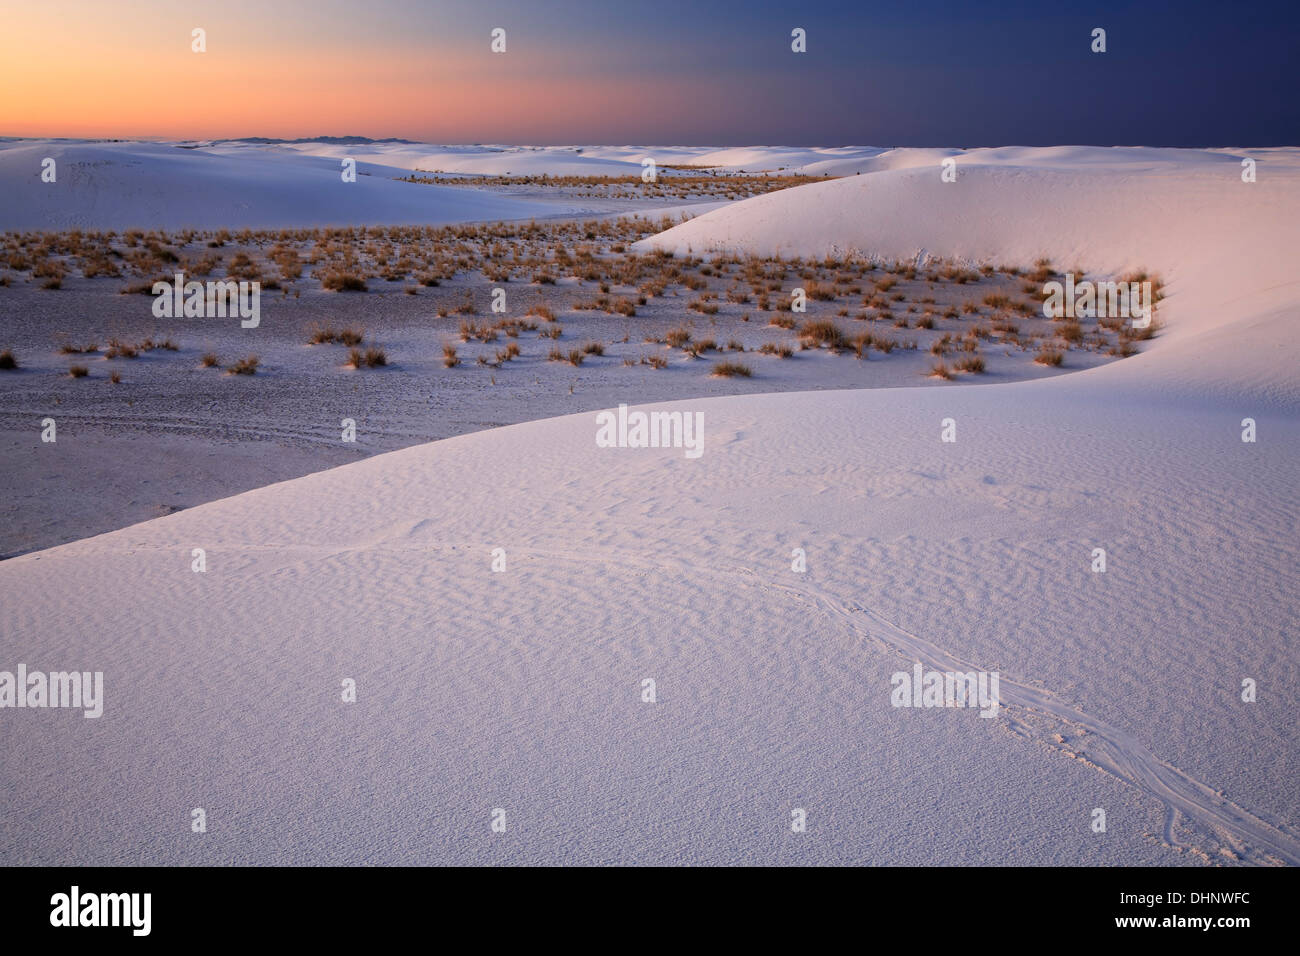 Dünen und Sträucher bei Sonnenaufgang, White Sands National Monument, Alamogordo, New Mexiko USA Stockbild